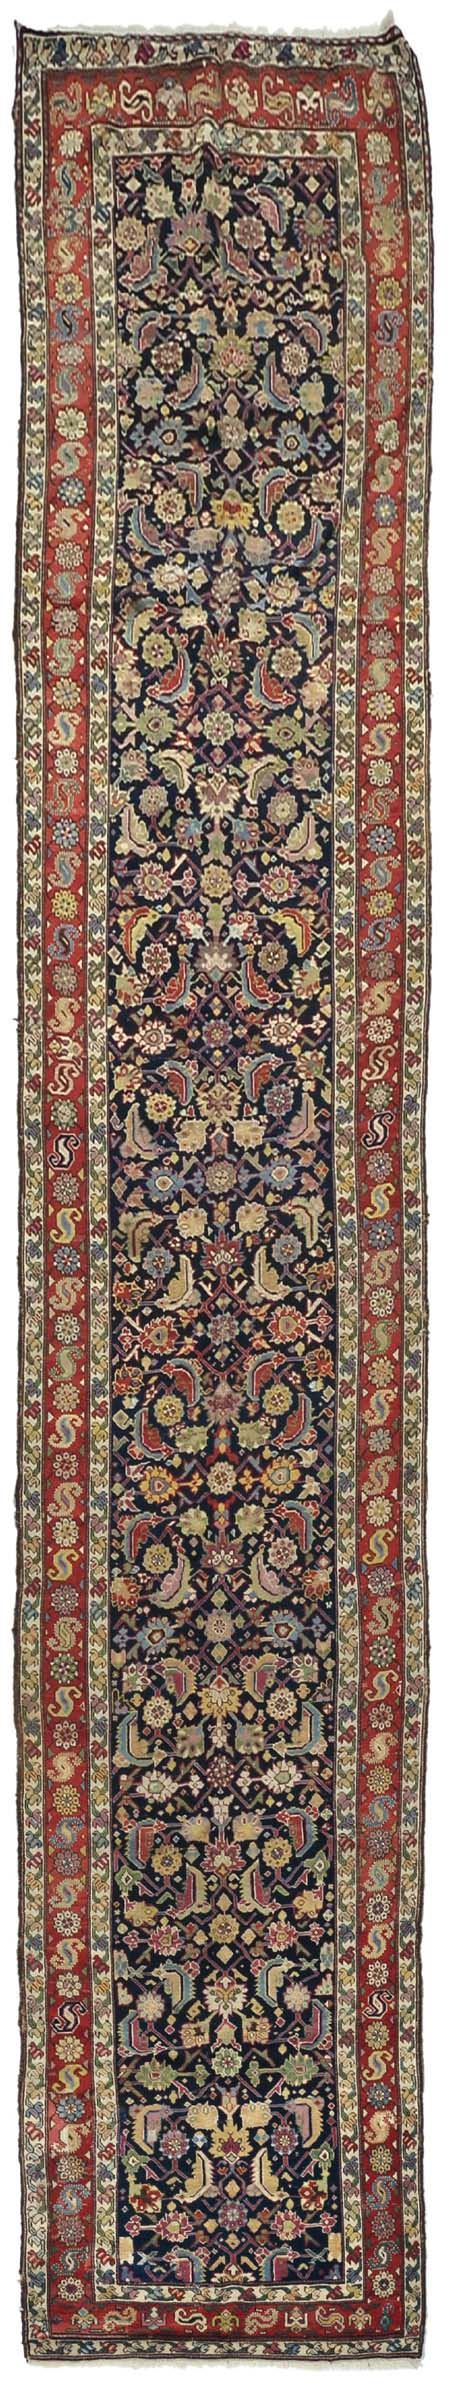 A runner caucasus Karabagh, end 19th century. Overal very good condition,replaced sides.